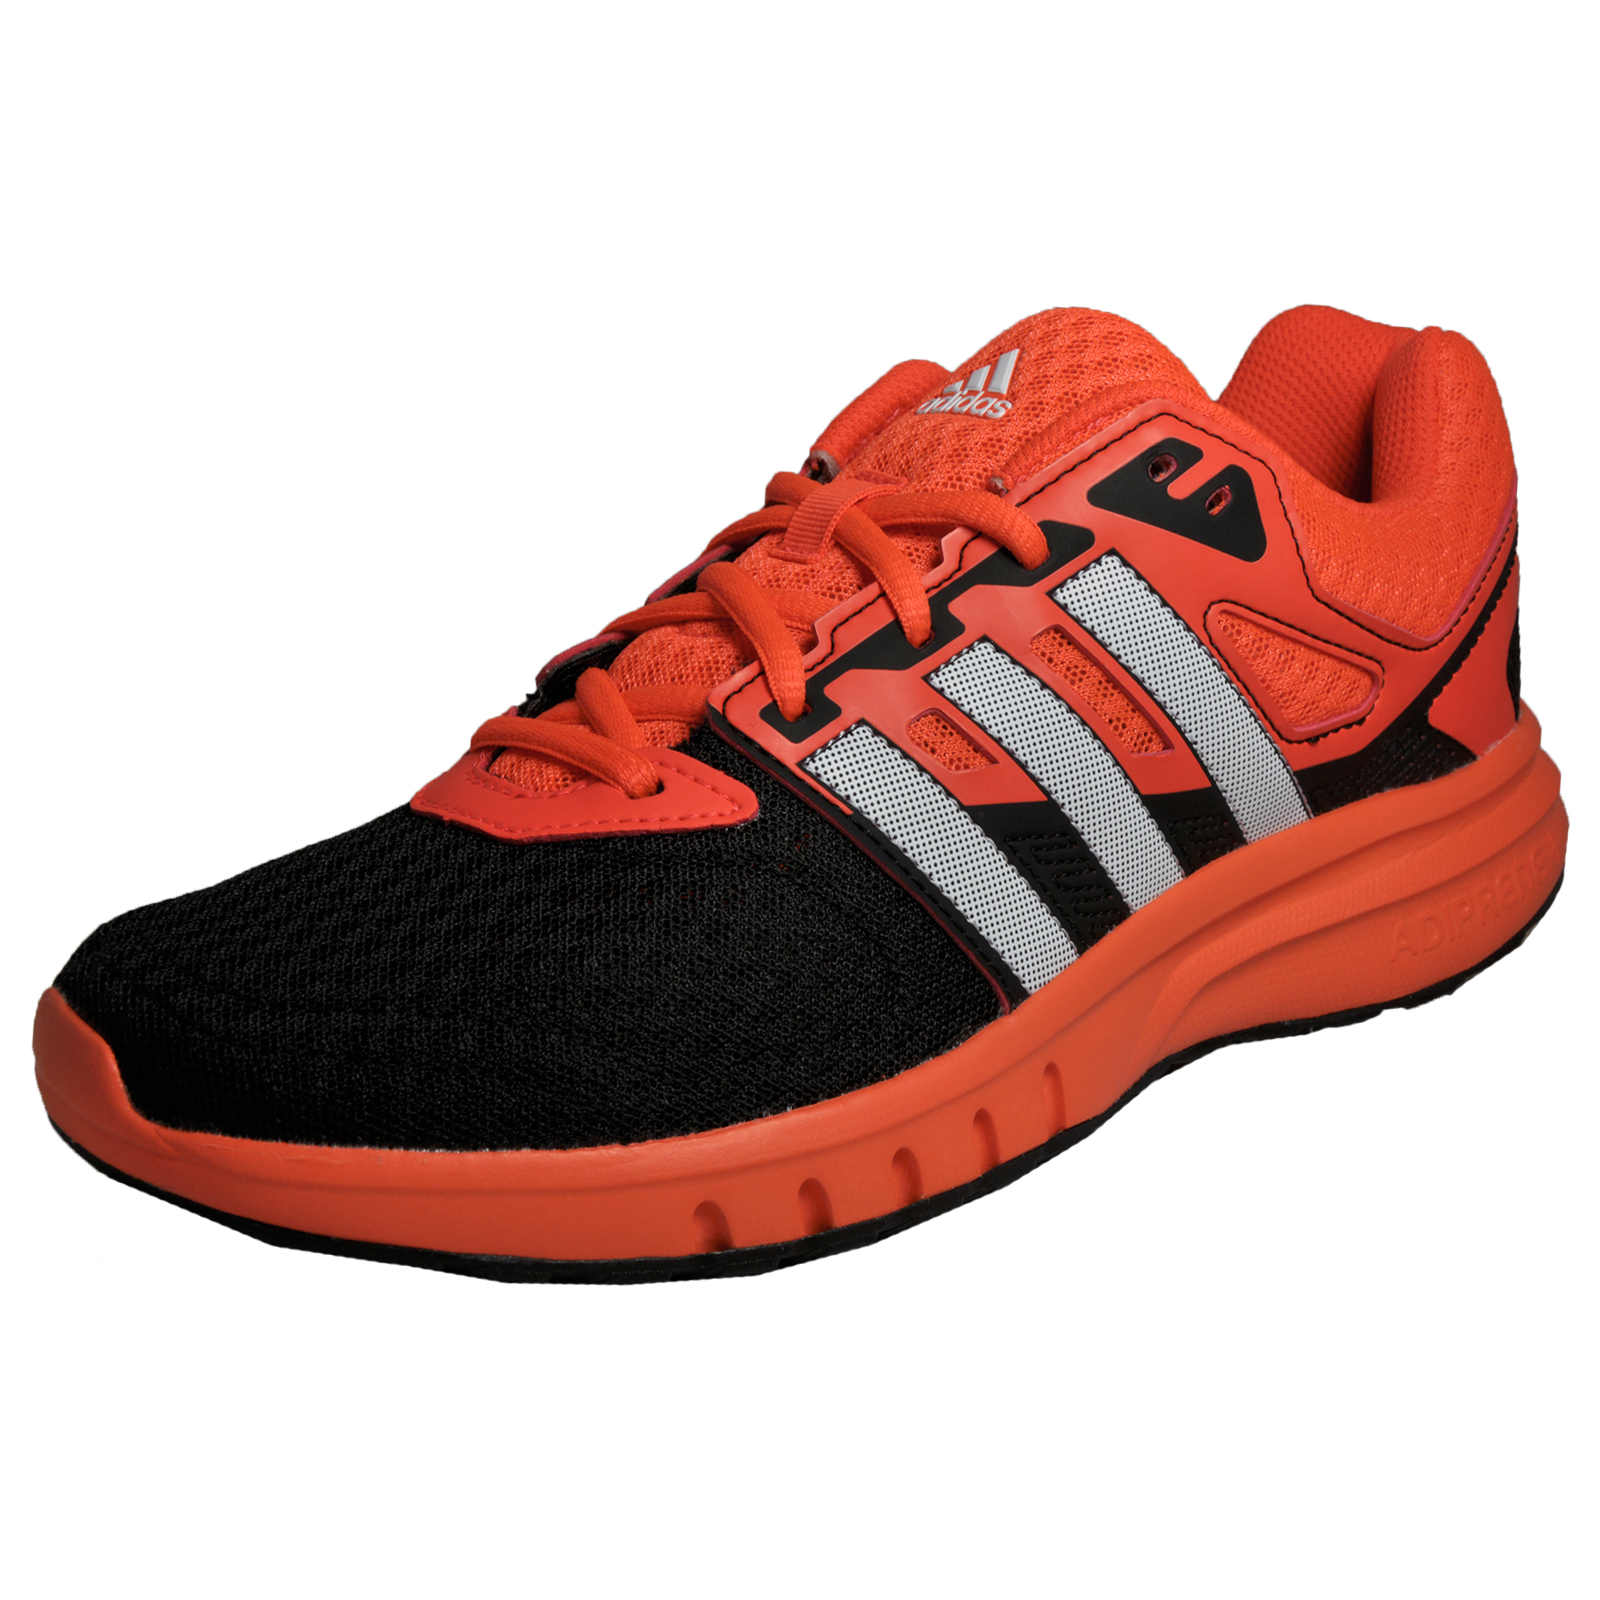 Adidas Galaxy 2 Mens Running Shoes Fitness Gym Workout